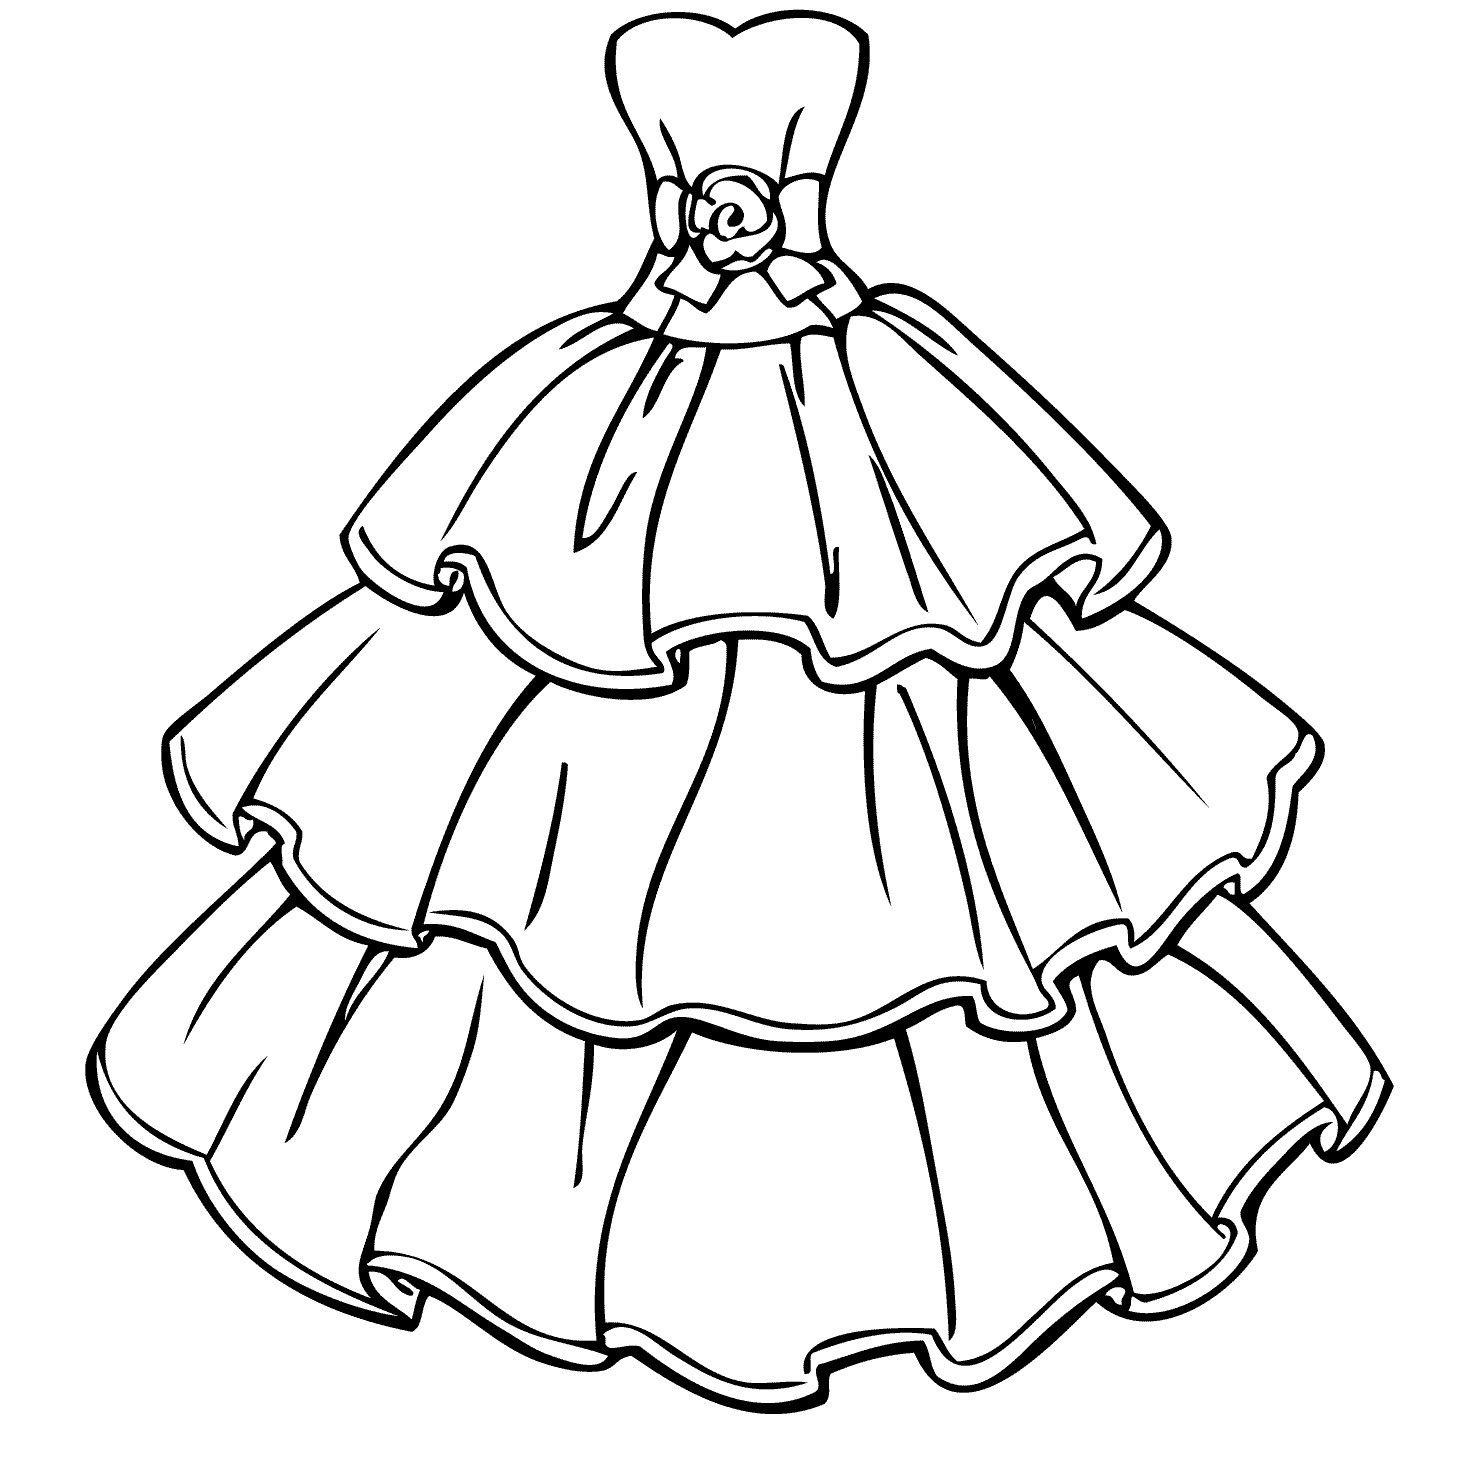 Princess Dress Coloring Page Wedding coloring pages